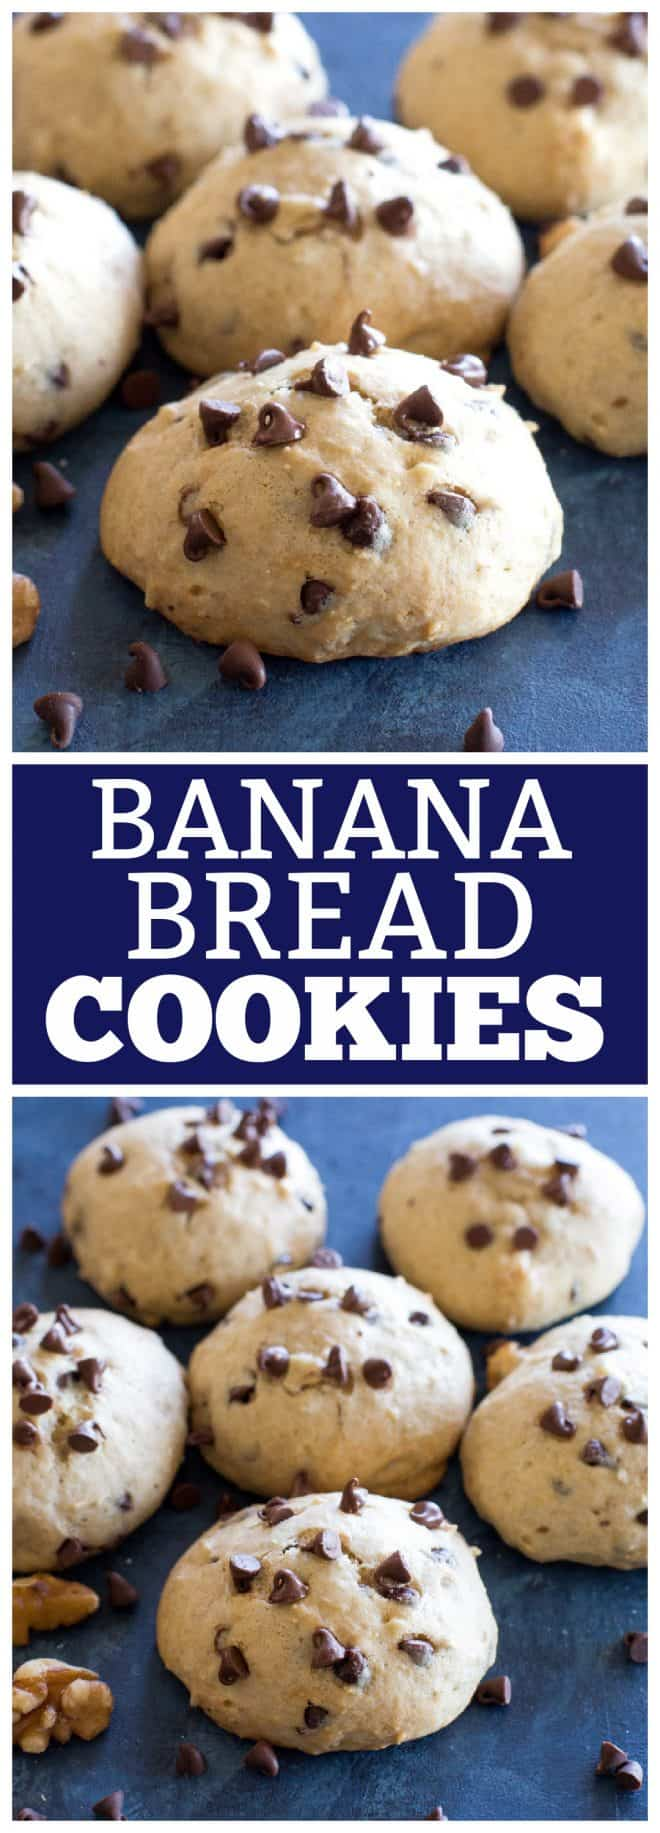 These Banana Bread Cookies are moist cake-like browned butter banana cookies with mini chocolate chips and nuts that taste just like banana bread. #banana #bread #cookies #dessert